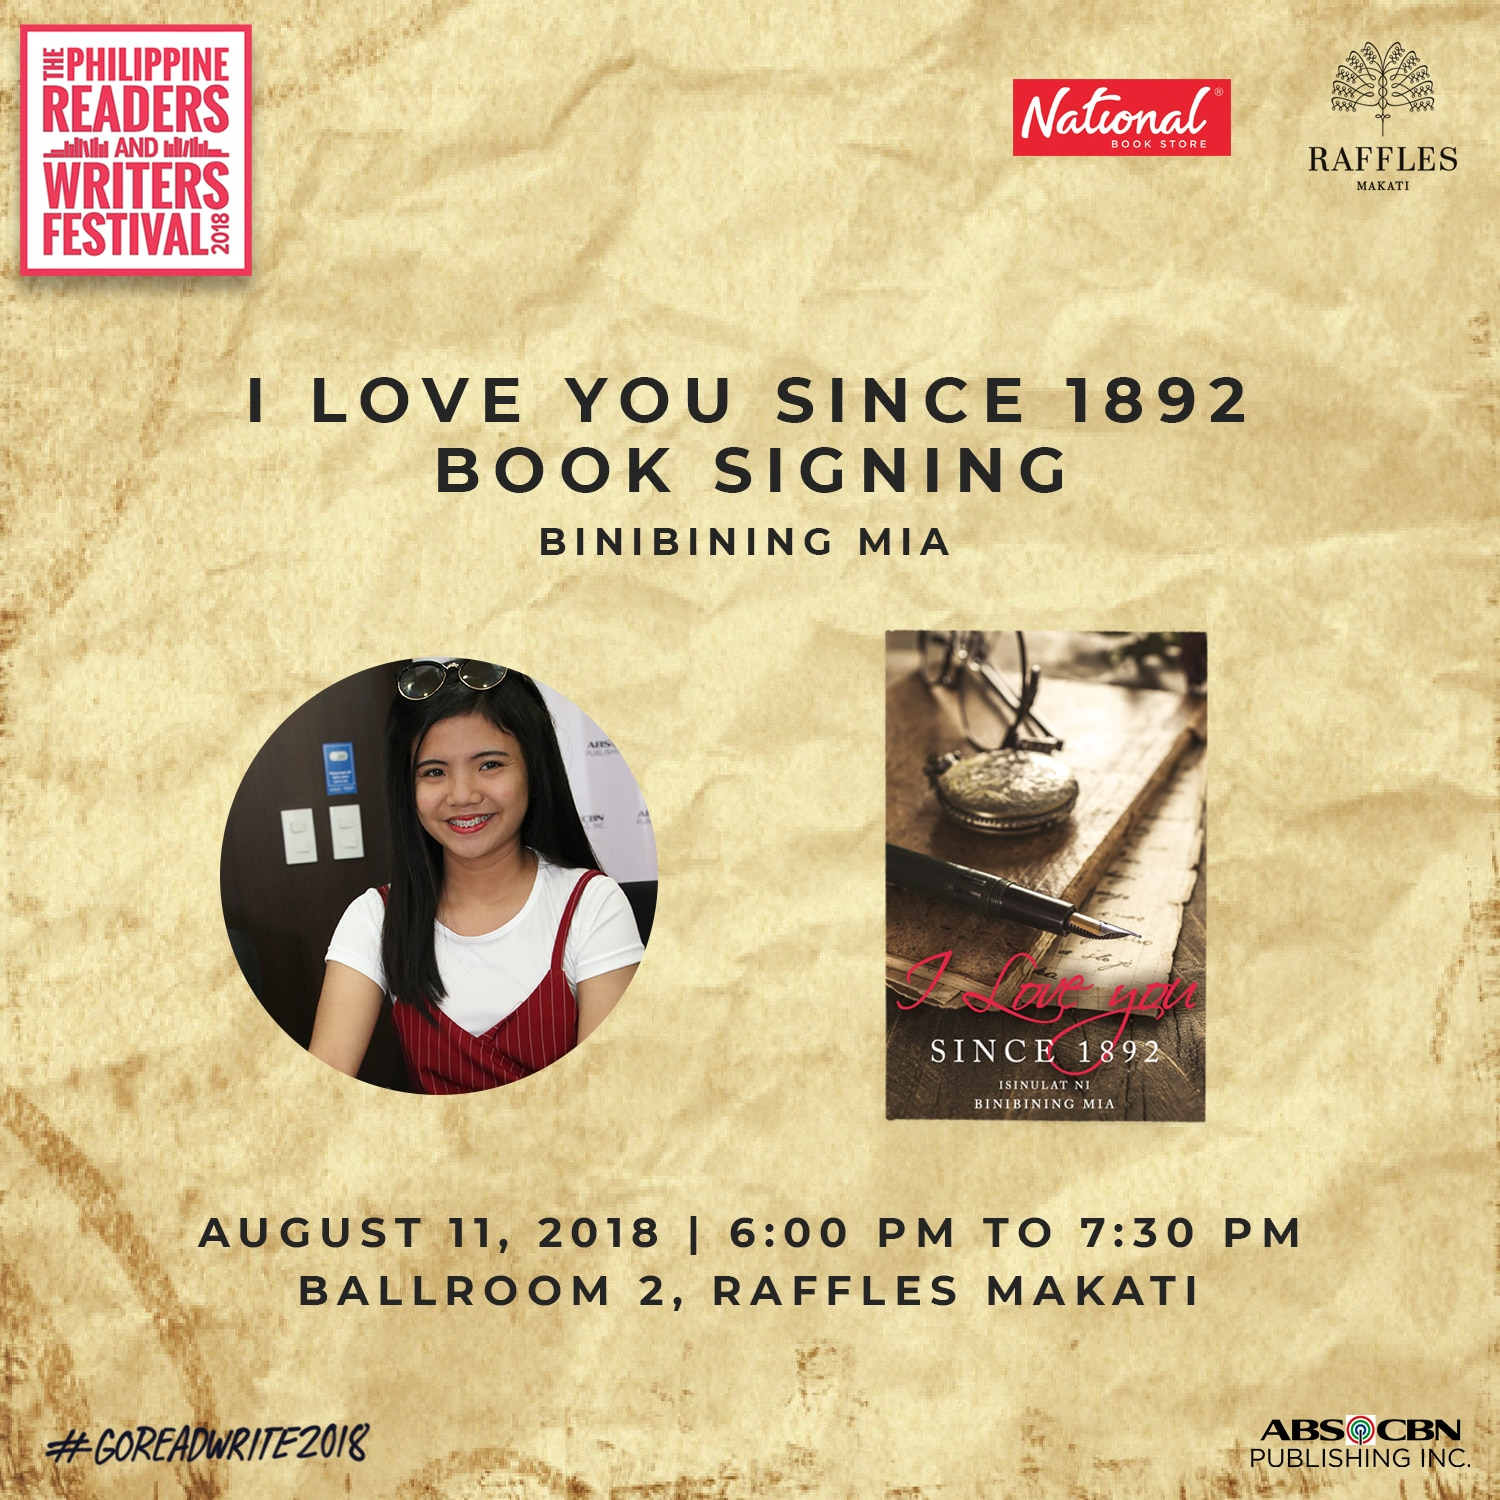 Binibining Mia, author of I Love You Since 1982 fiction, will be at PRWF on Saturday at 6 PM